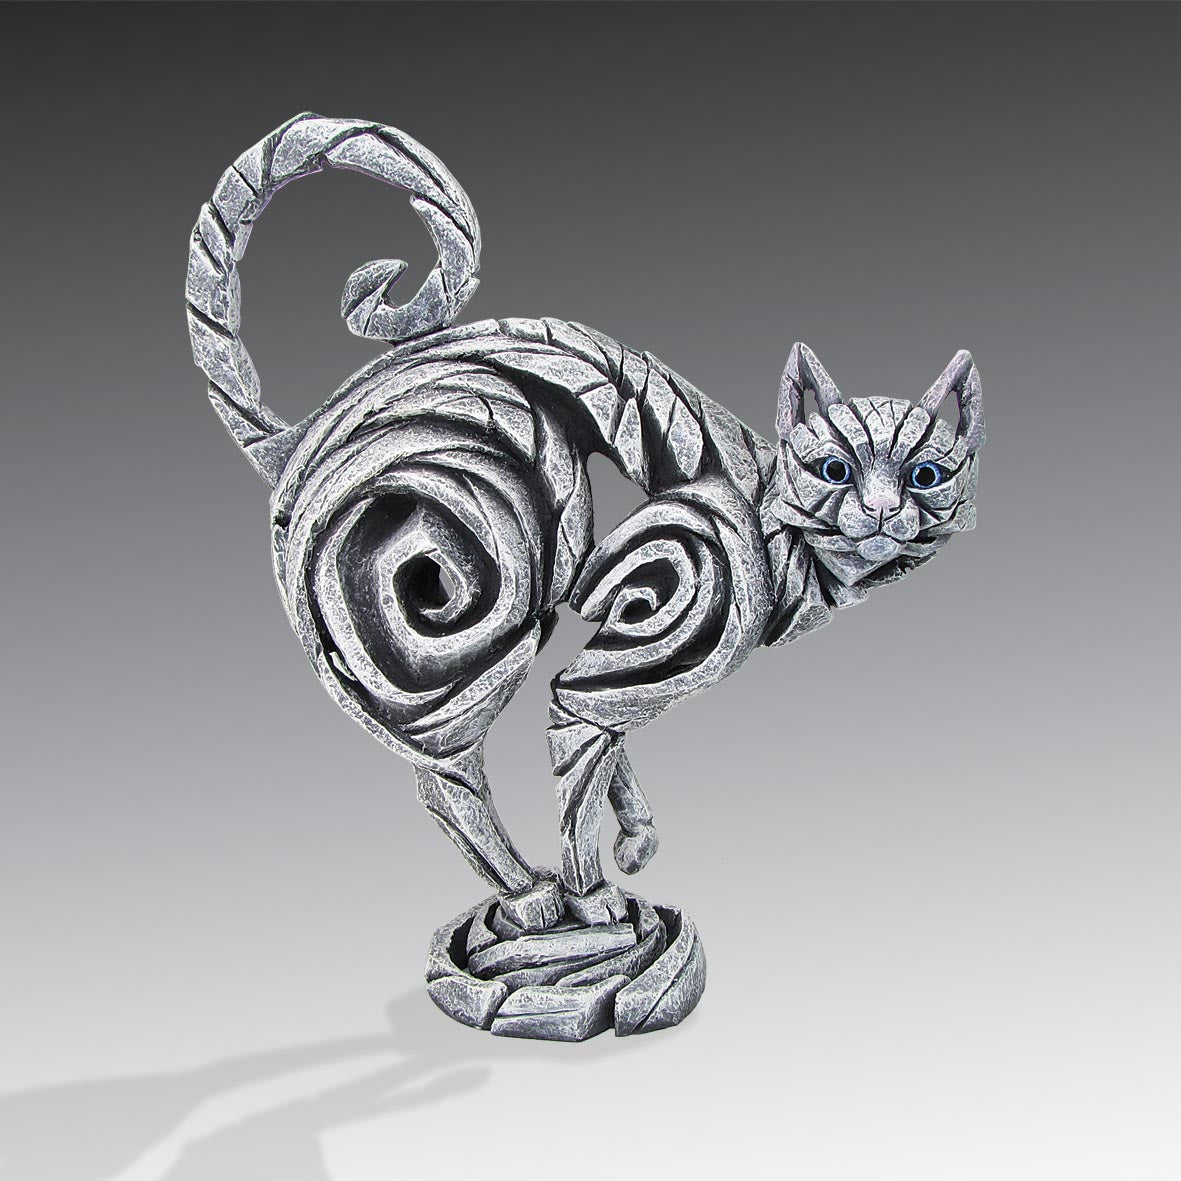 Edge Sculpture Cat - White